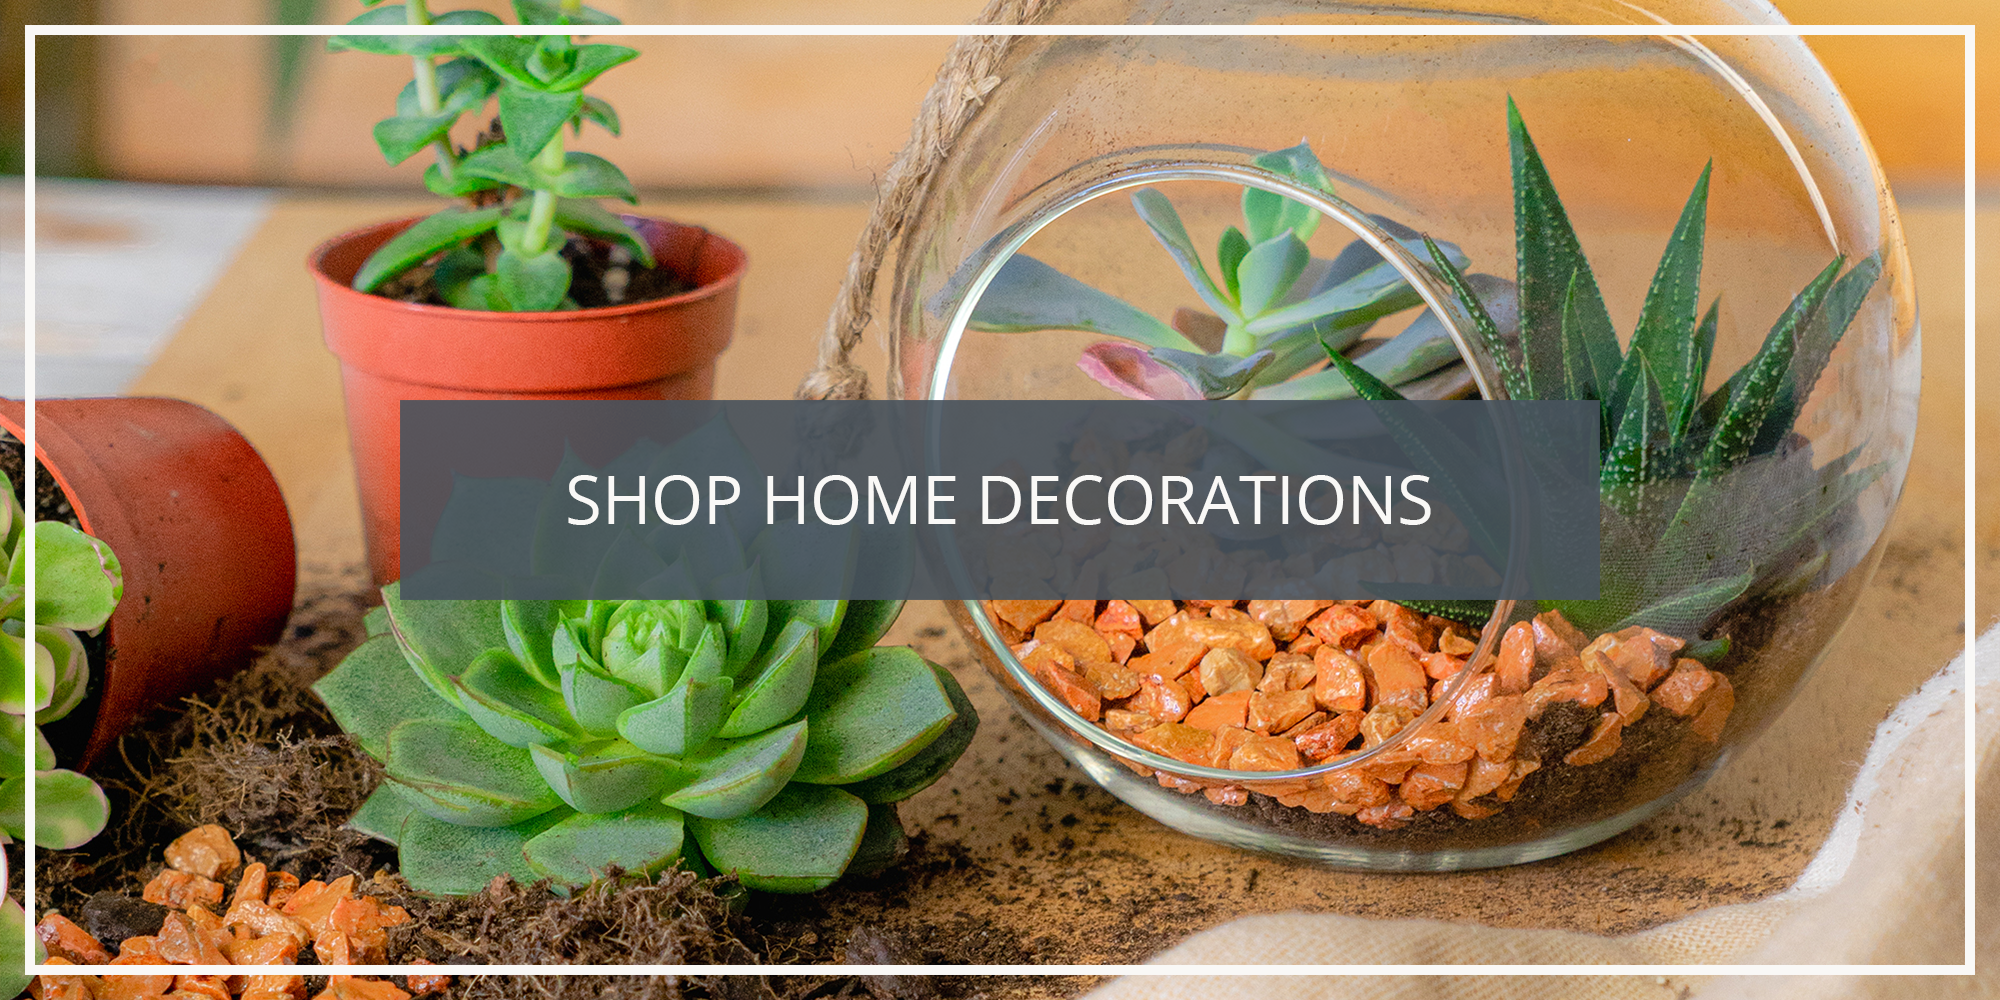 Shop the Argon Tableware Home Decorations Collection